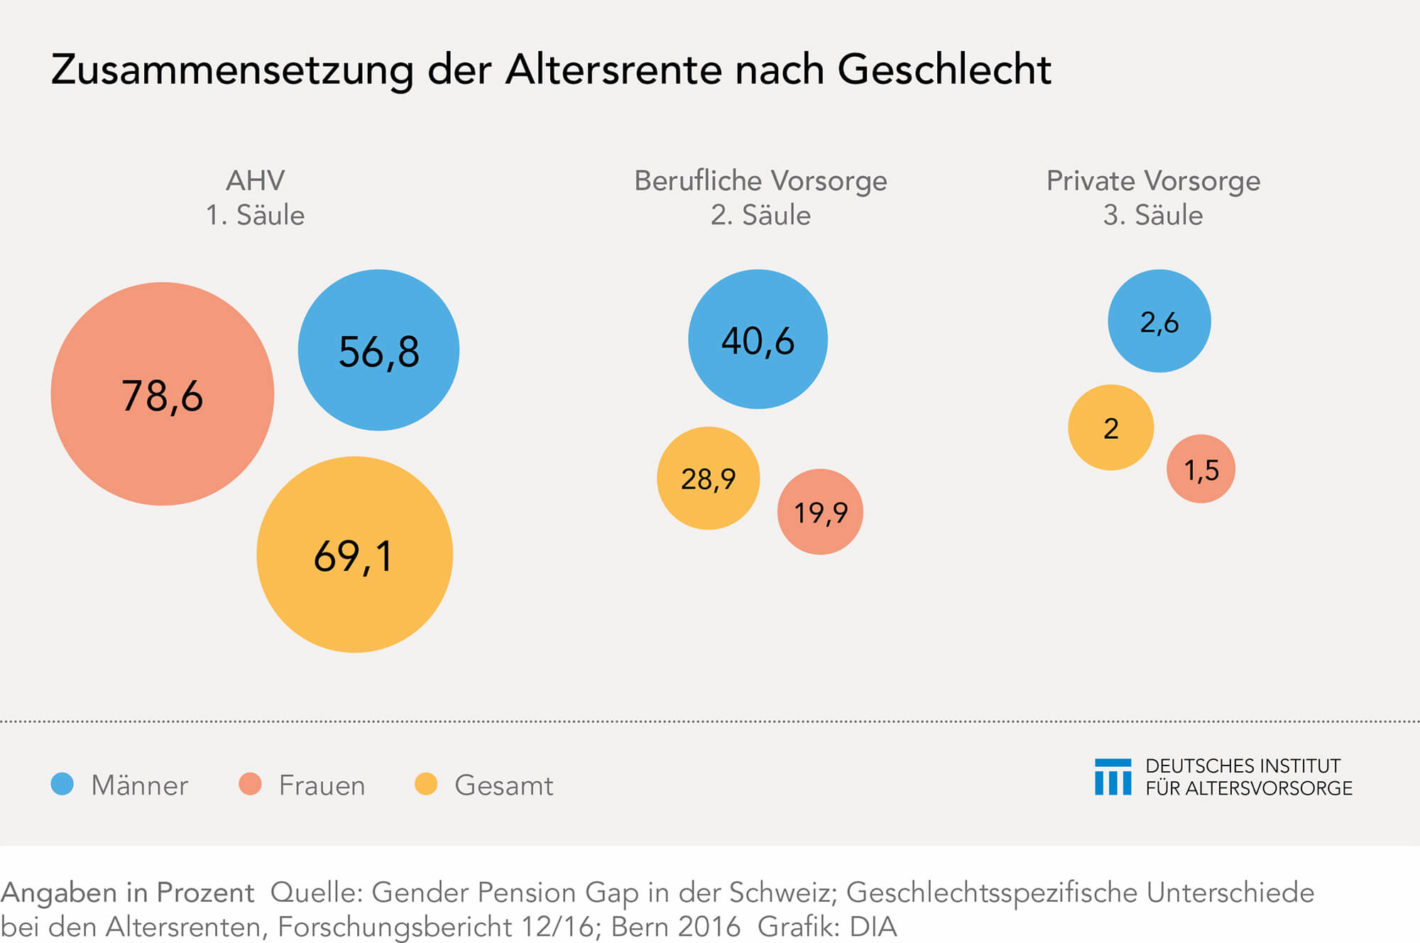 Der Gender Pension Gap in der Schweiz